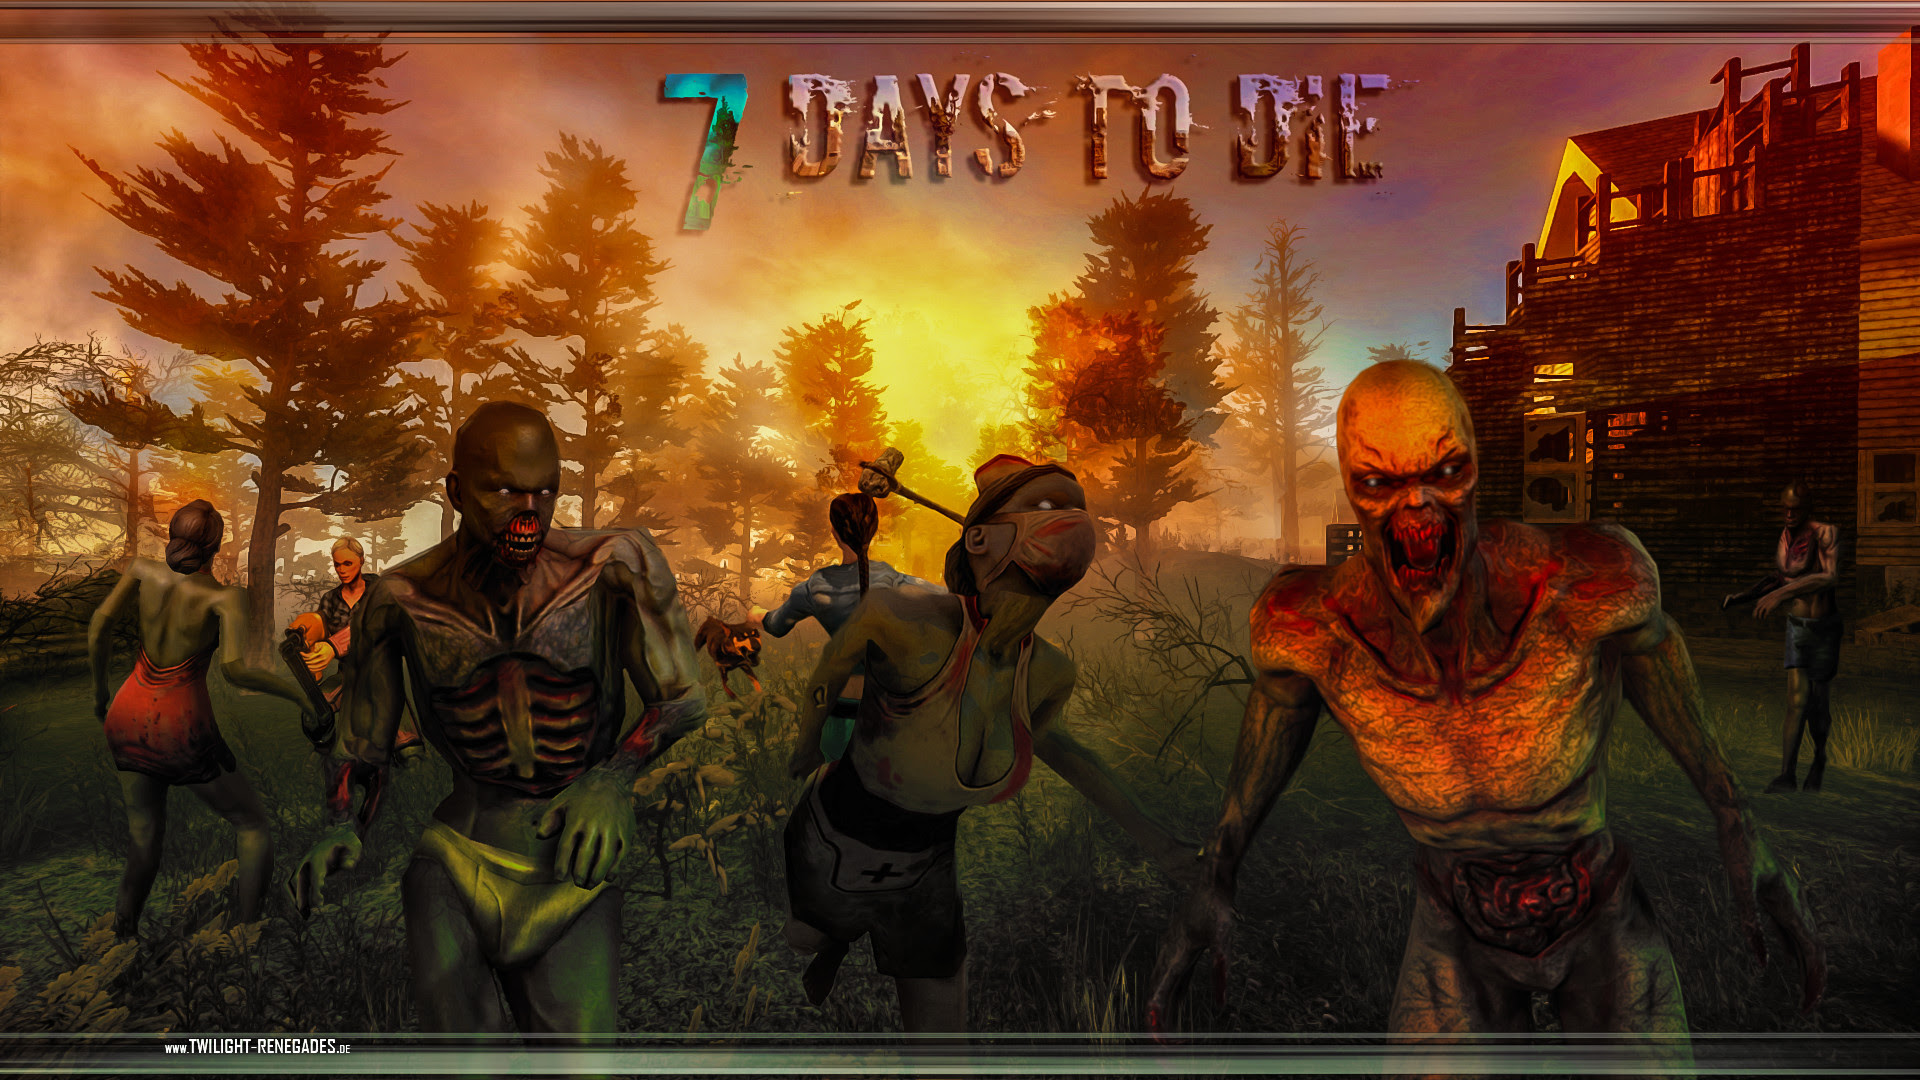 7 Days to Die Wallpaper (95+ images)